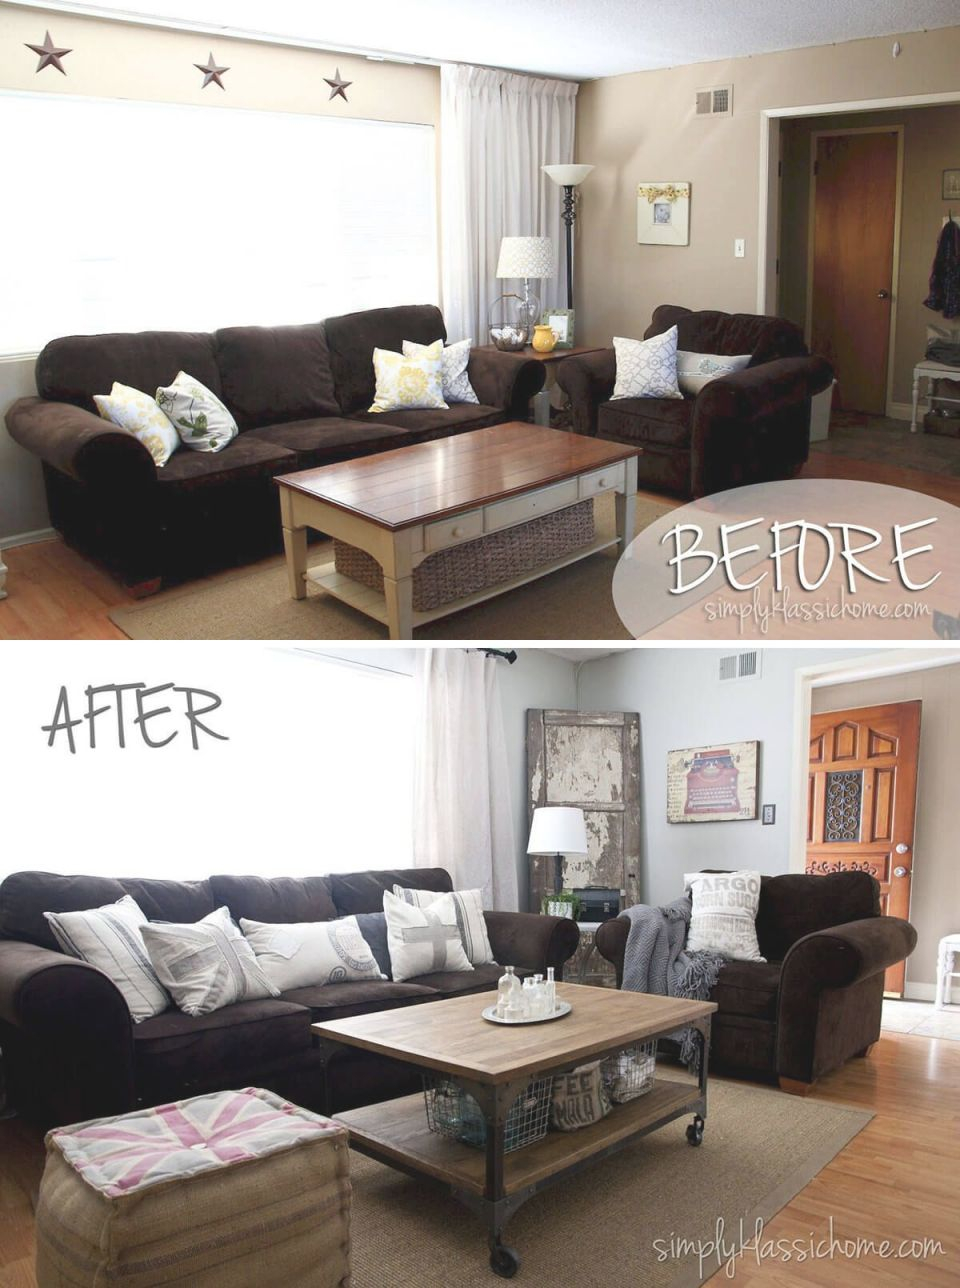 Before And After: 26 Budget Friendly Living Room Makeovers pertaining to 13+ Unique Ideas For Decorating A Small Living Room On A Budget